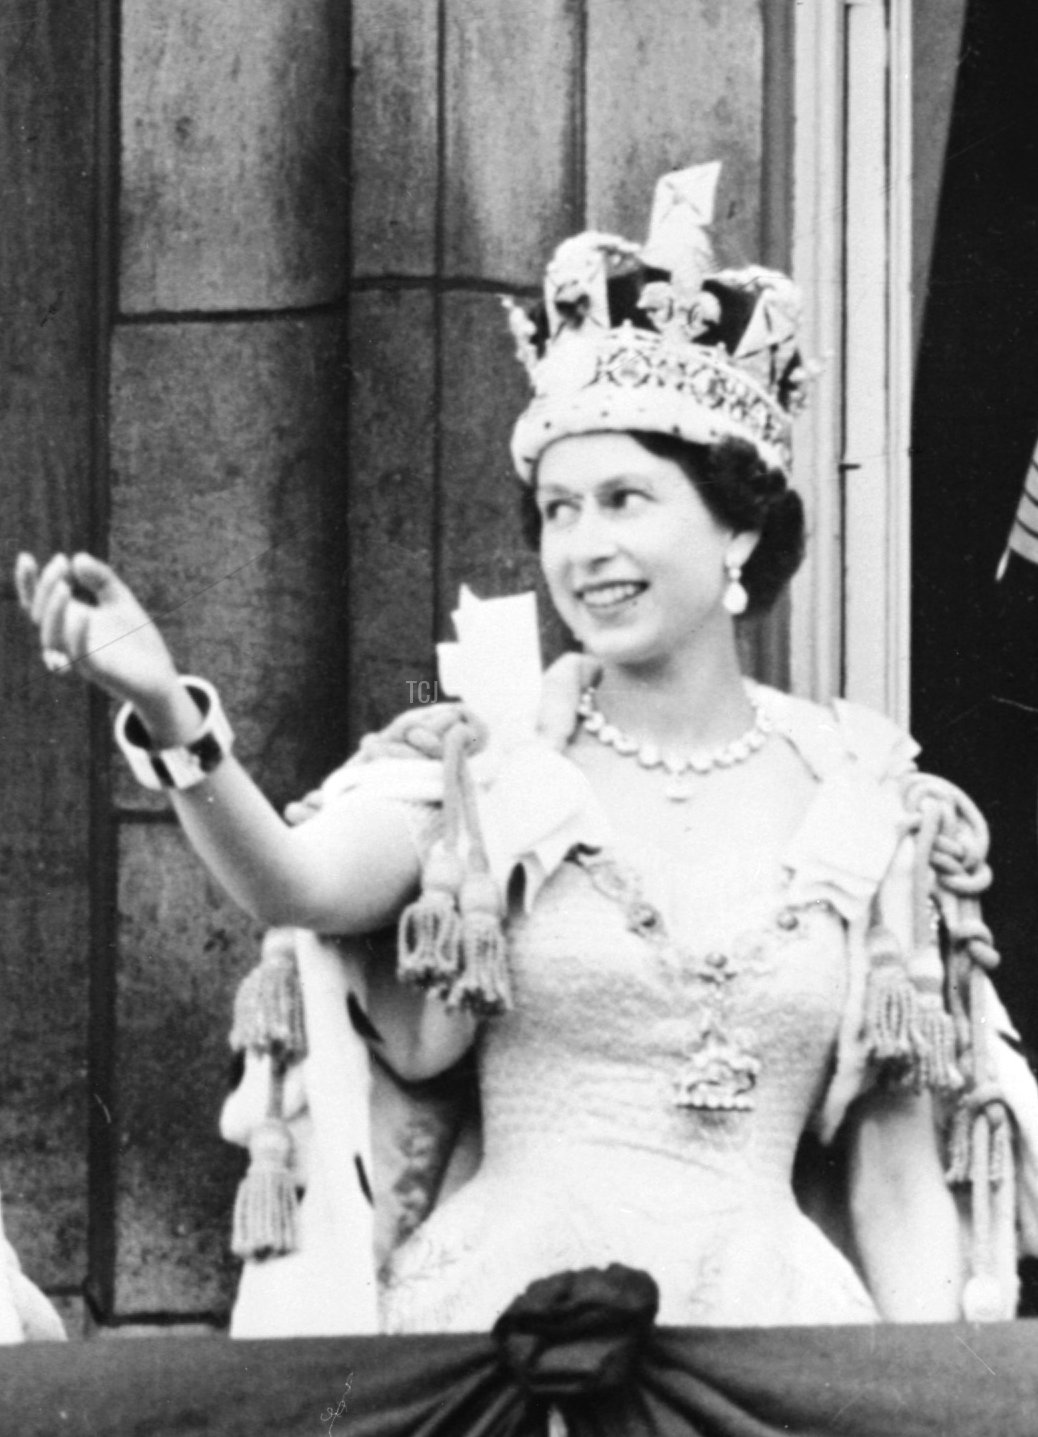 Britain's Queen Elizabeth II (L) accompanied by Britain's Prince Philip, Duke of Edinburgh (R) waves to the crowd, June 2, 1953 after being crowned at Westminter Abbey in London